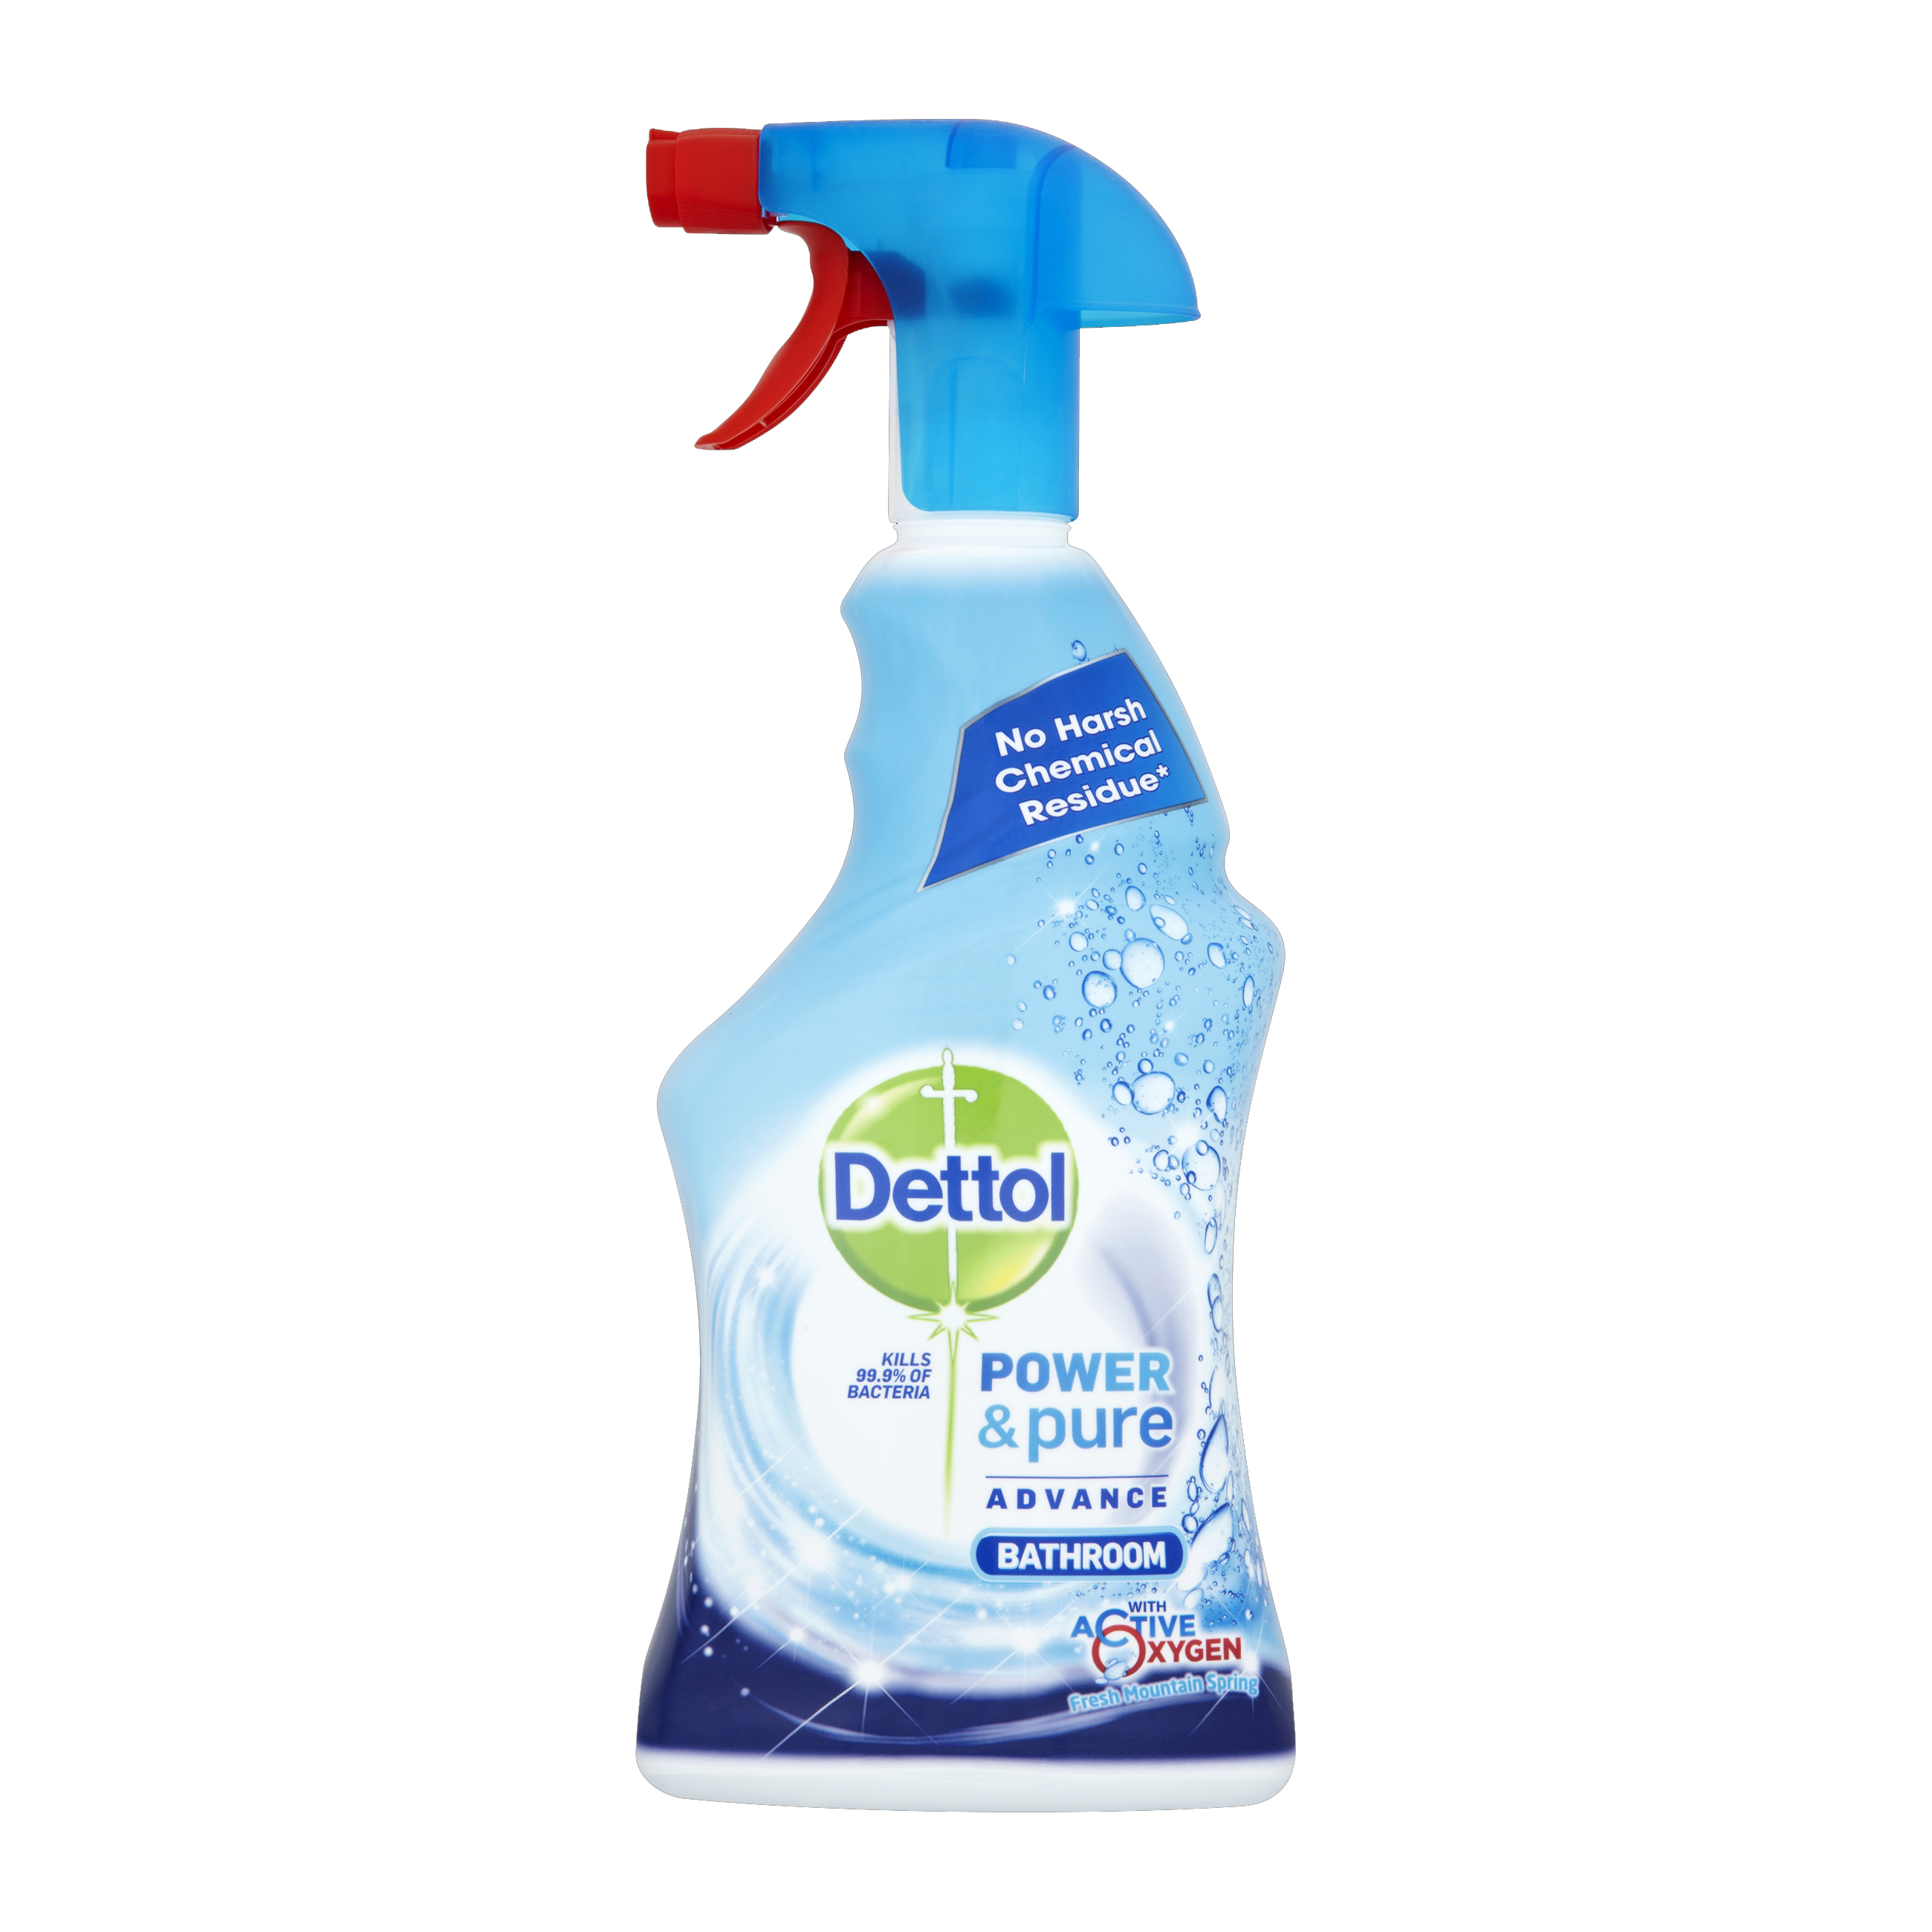 Disinfectant Dettol Power & Pure Bathroom Cleaner Spray 750ml Ref RB788783